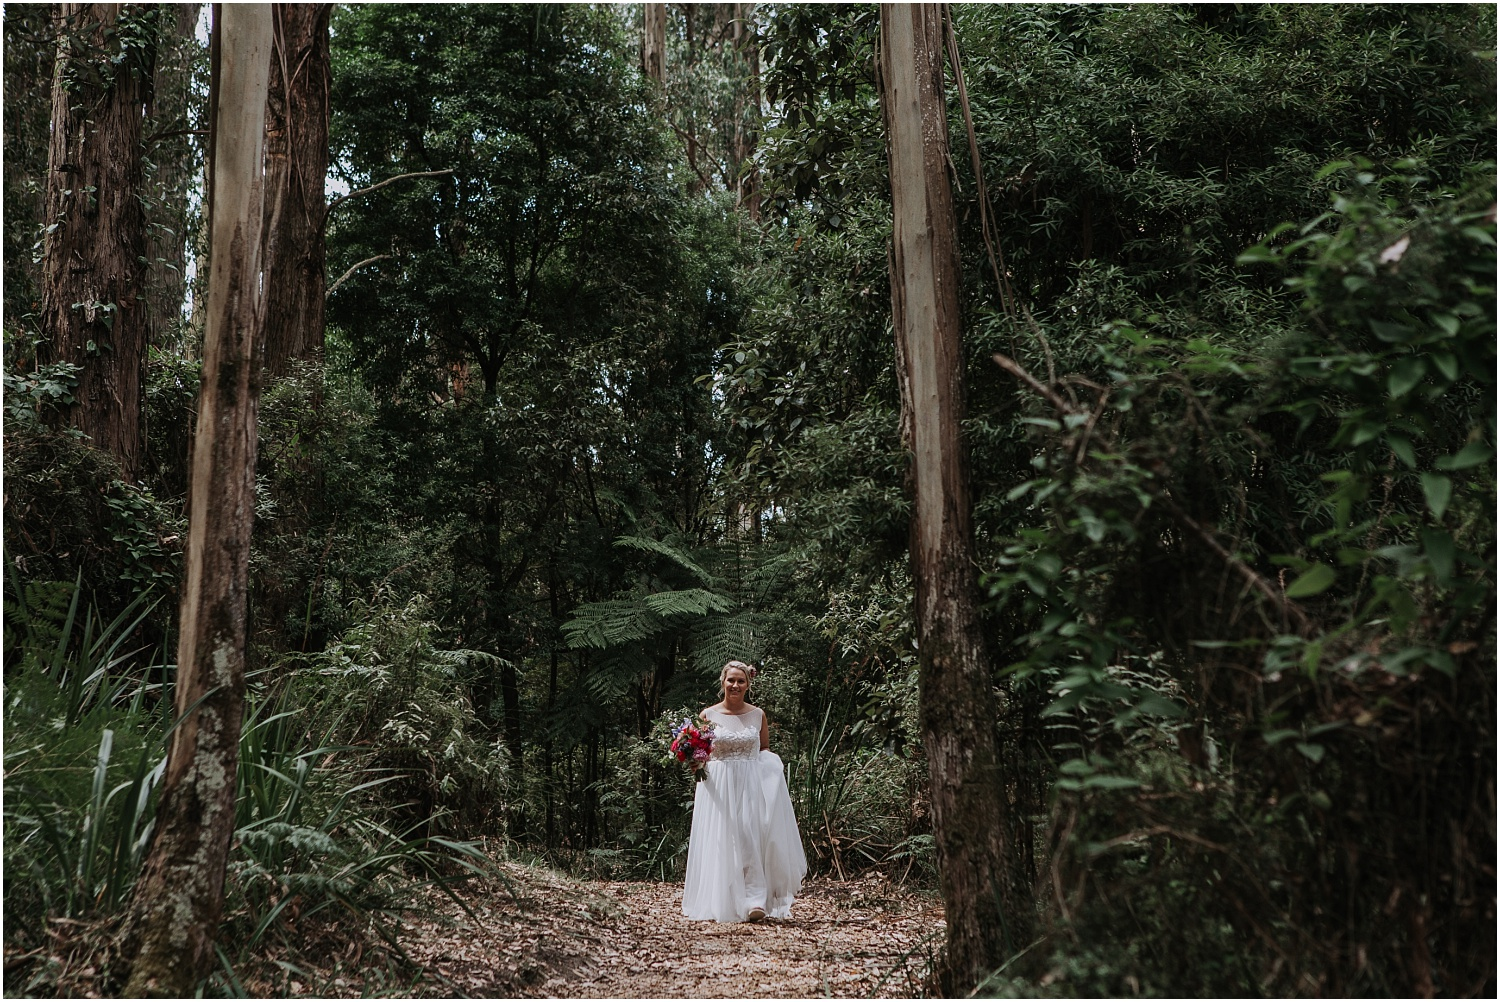 Ainslee and Warwick's elopement at Erskin Falls and the Lorne Beach Pavilion on the Great Ocean Road._0027.jpg